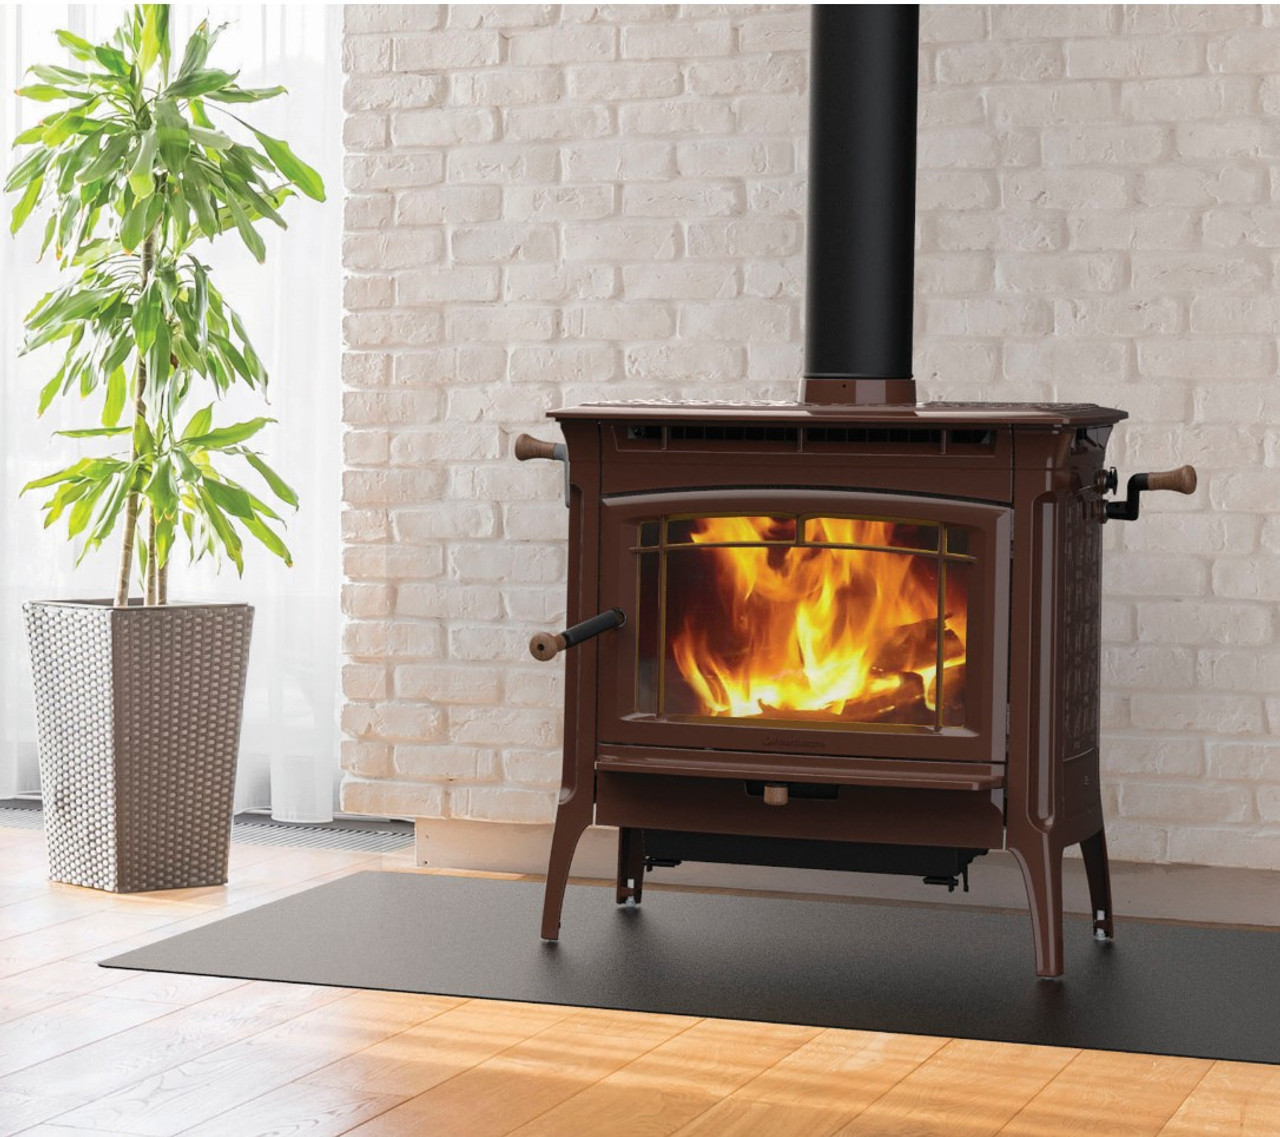 HearthStone Manchester Wood Stove in Brown